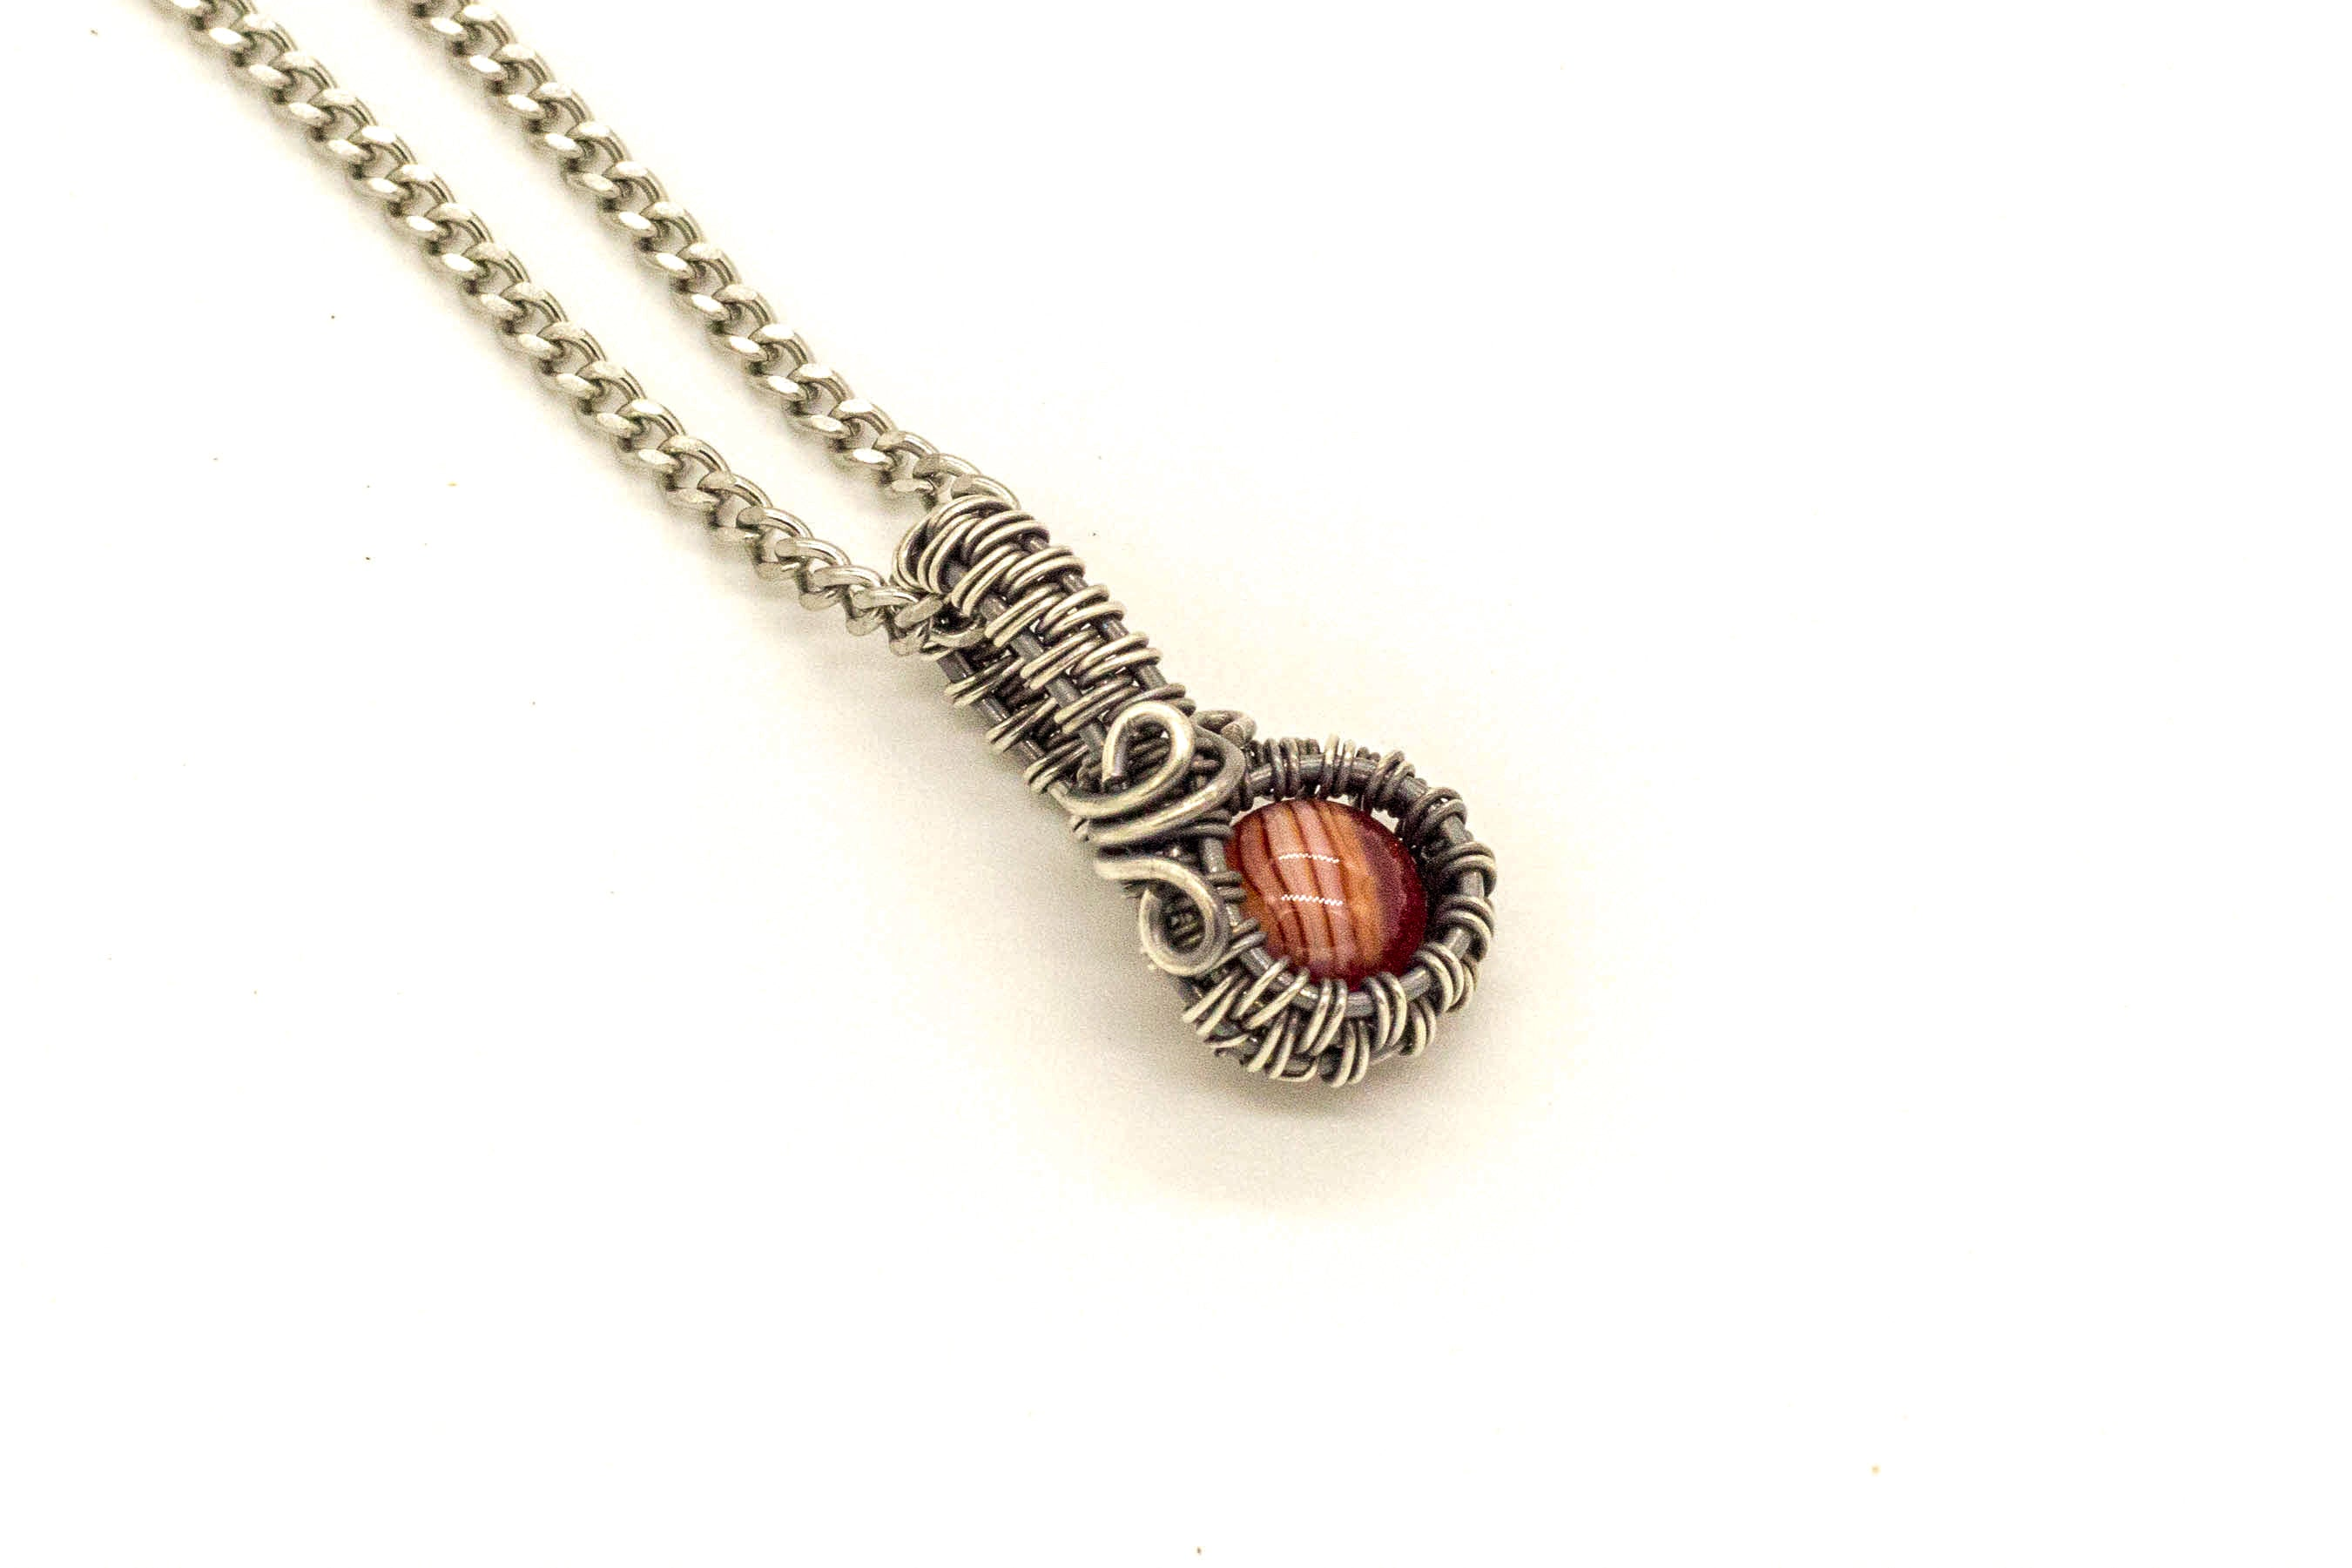 streaked-red-fused-glass-mini-pendant-sterling-silver-wire-wrapping-nymph-in-the-woods-jewelry